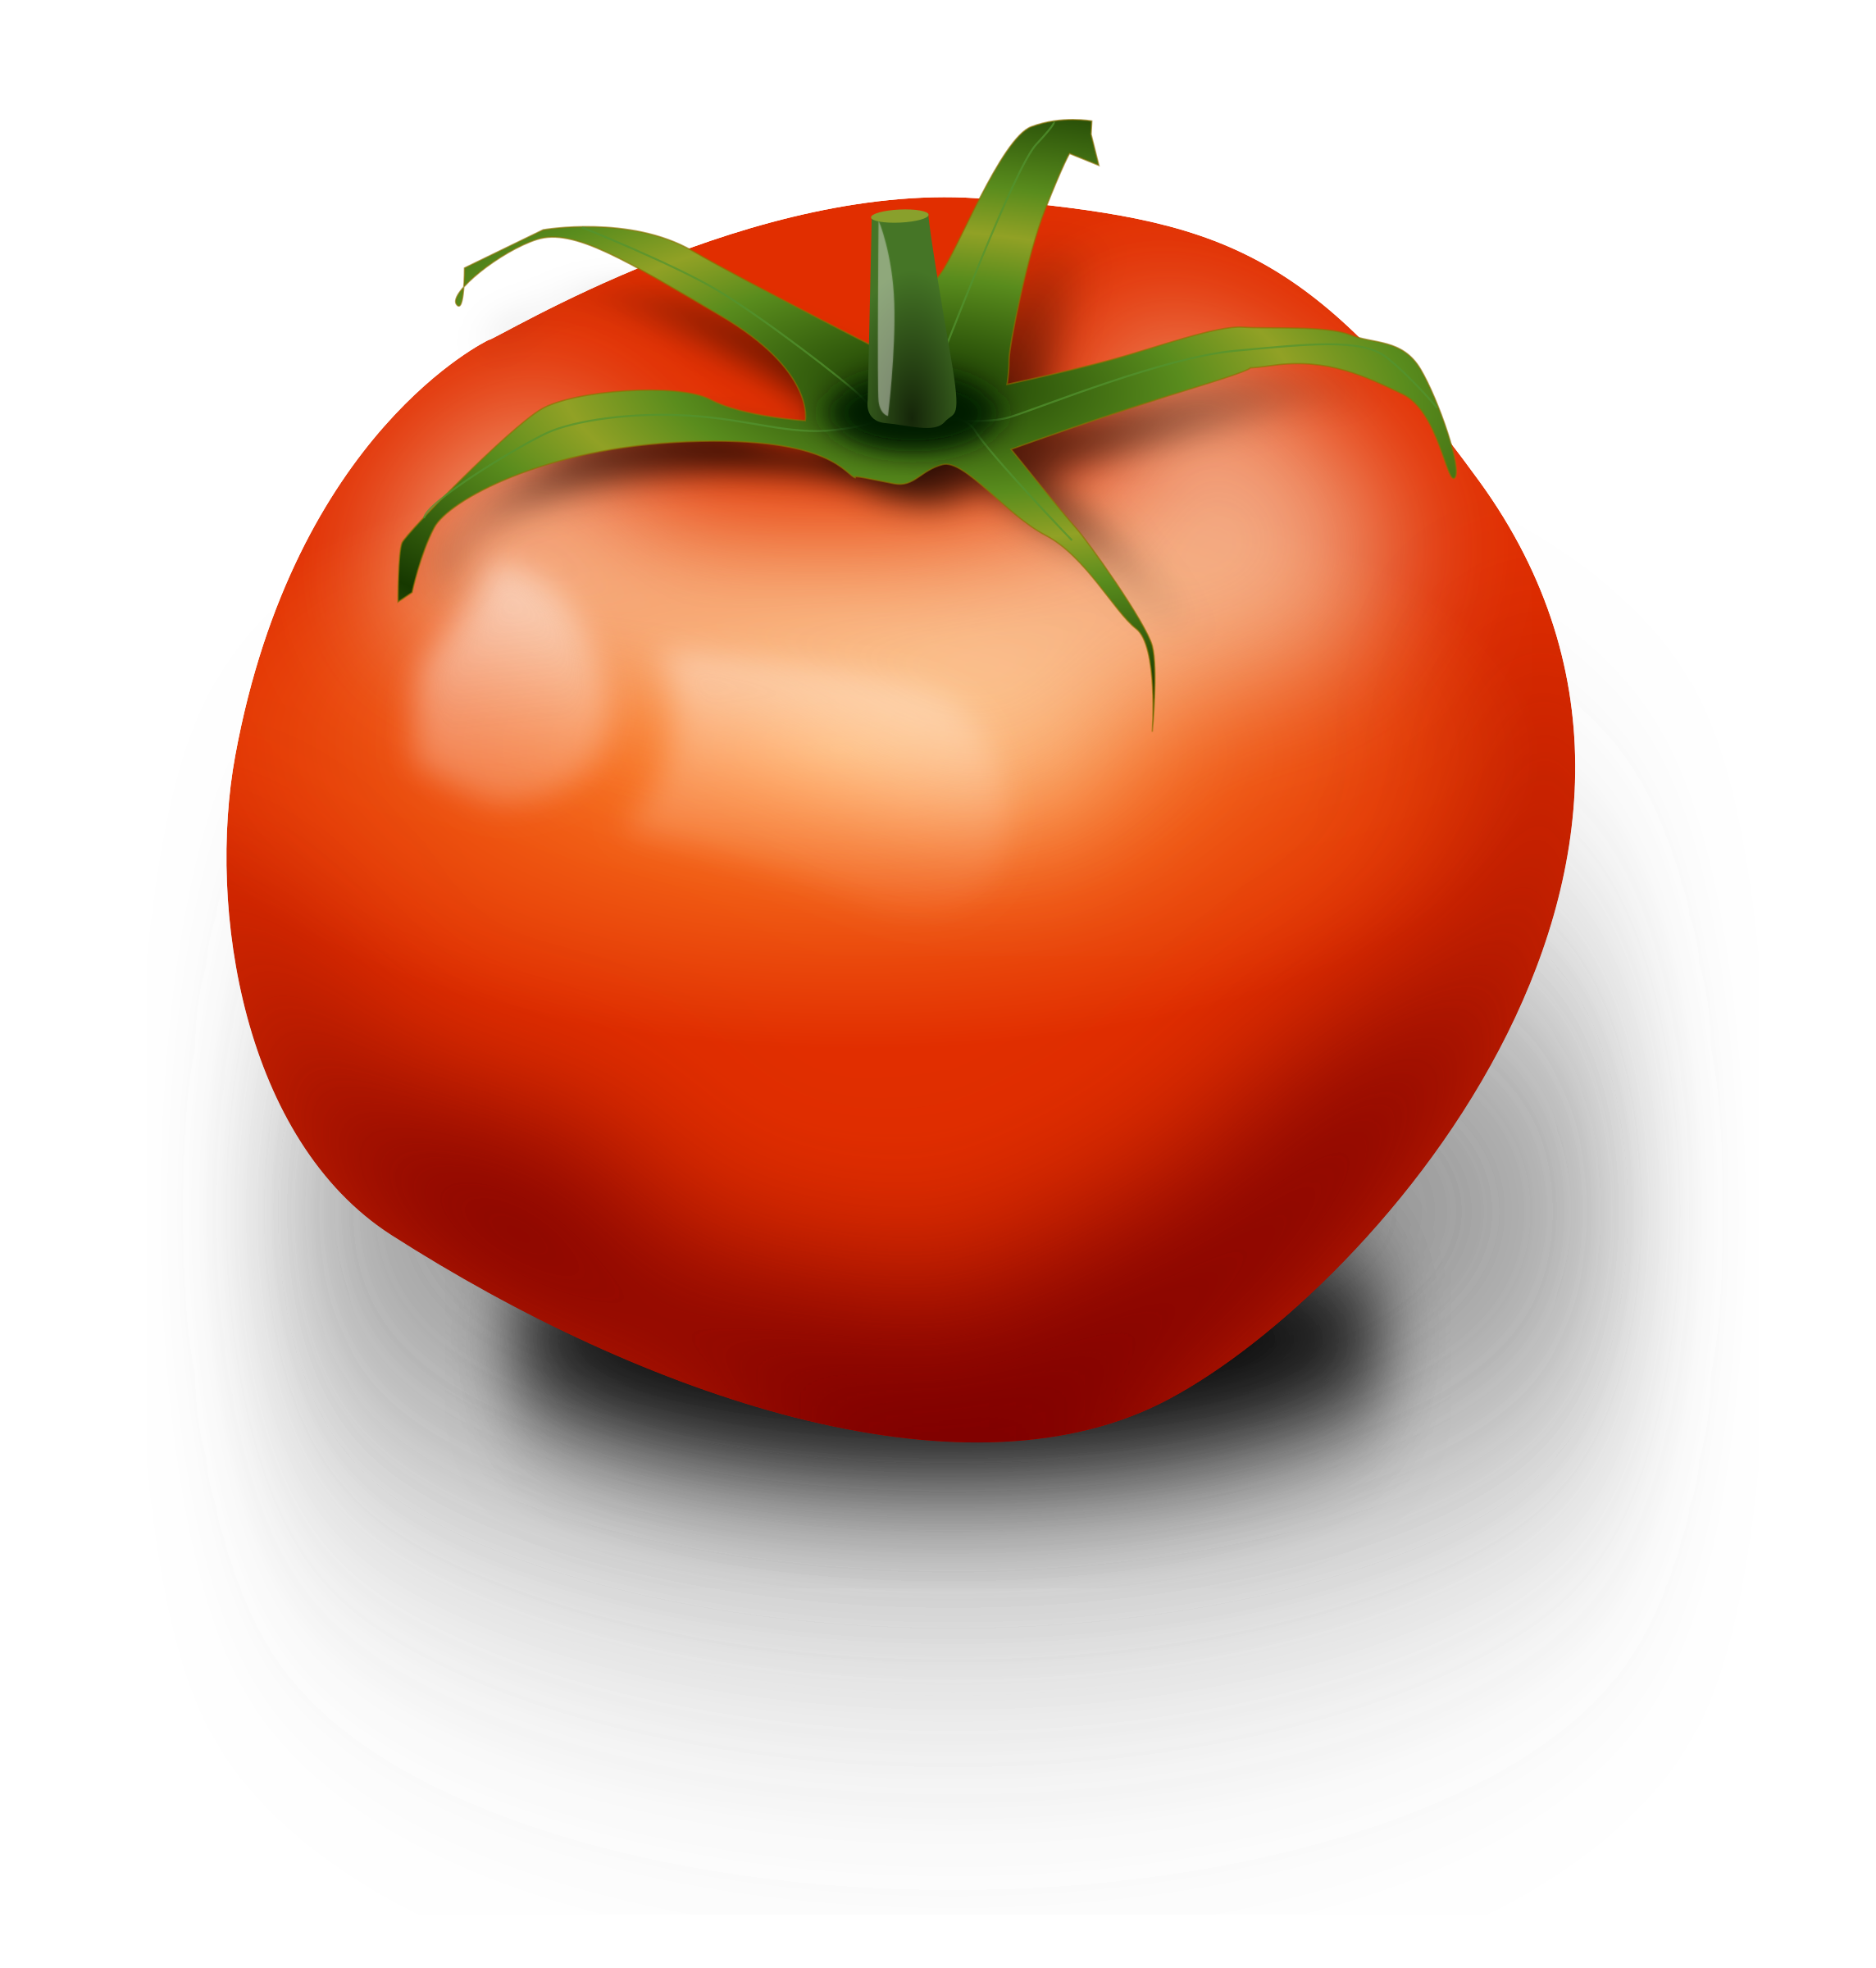 tomato by Chrisdesign